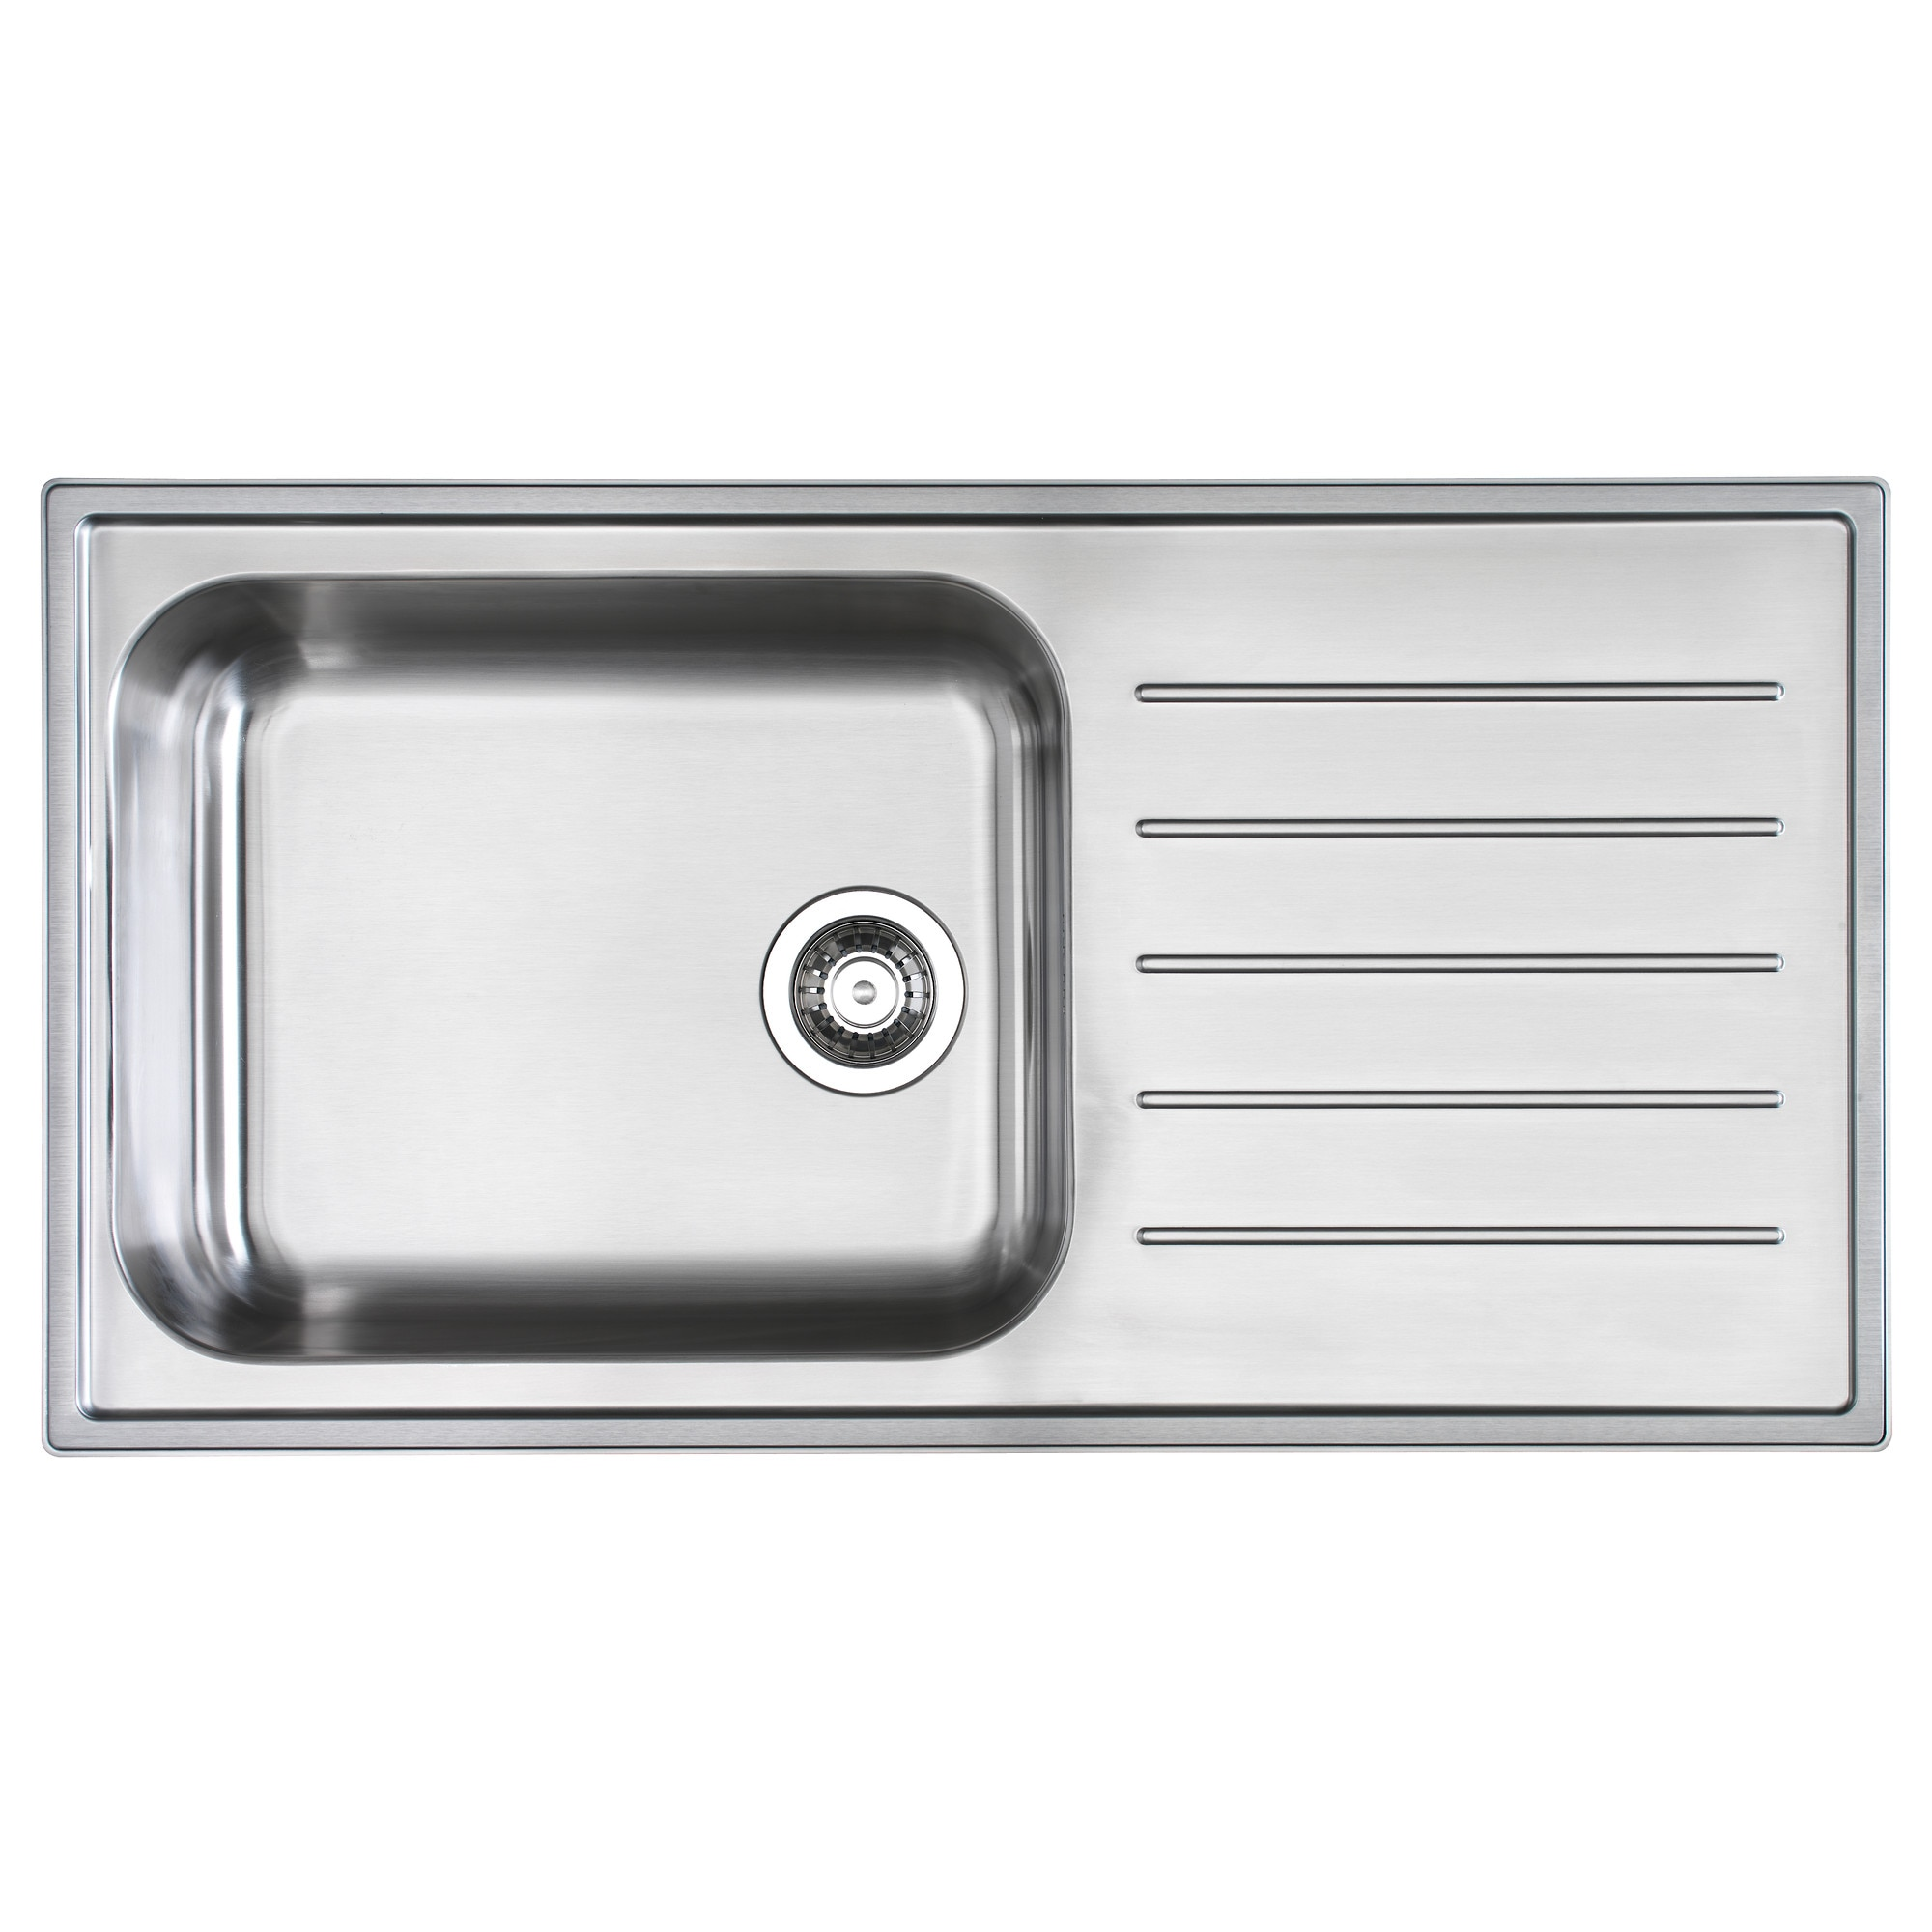 ... Bath Rugs Home Kitchen X Small Kitchen Sink Dimensions. Androidtop.co